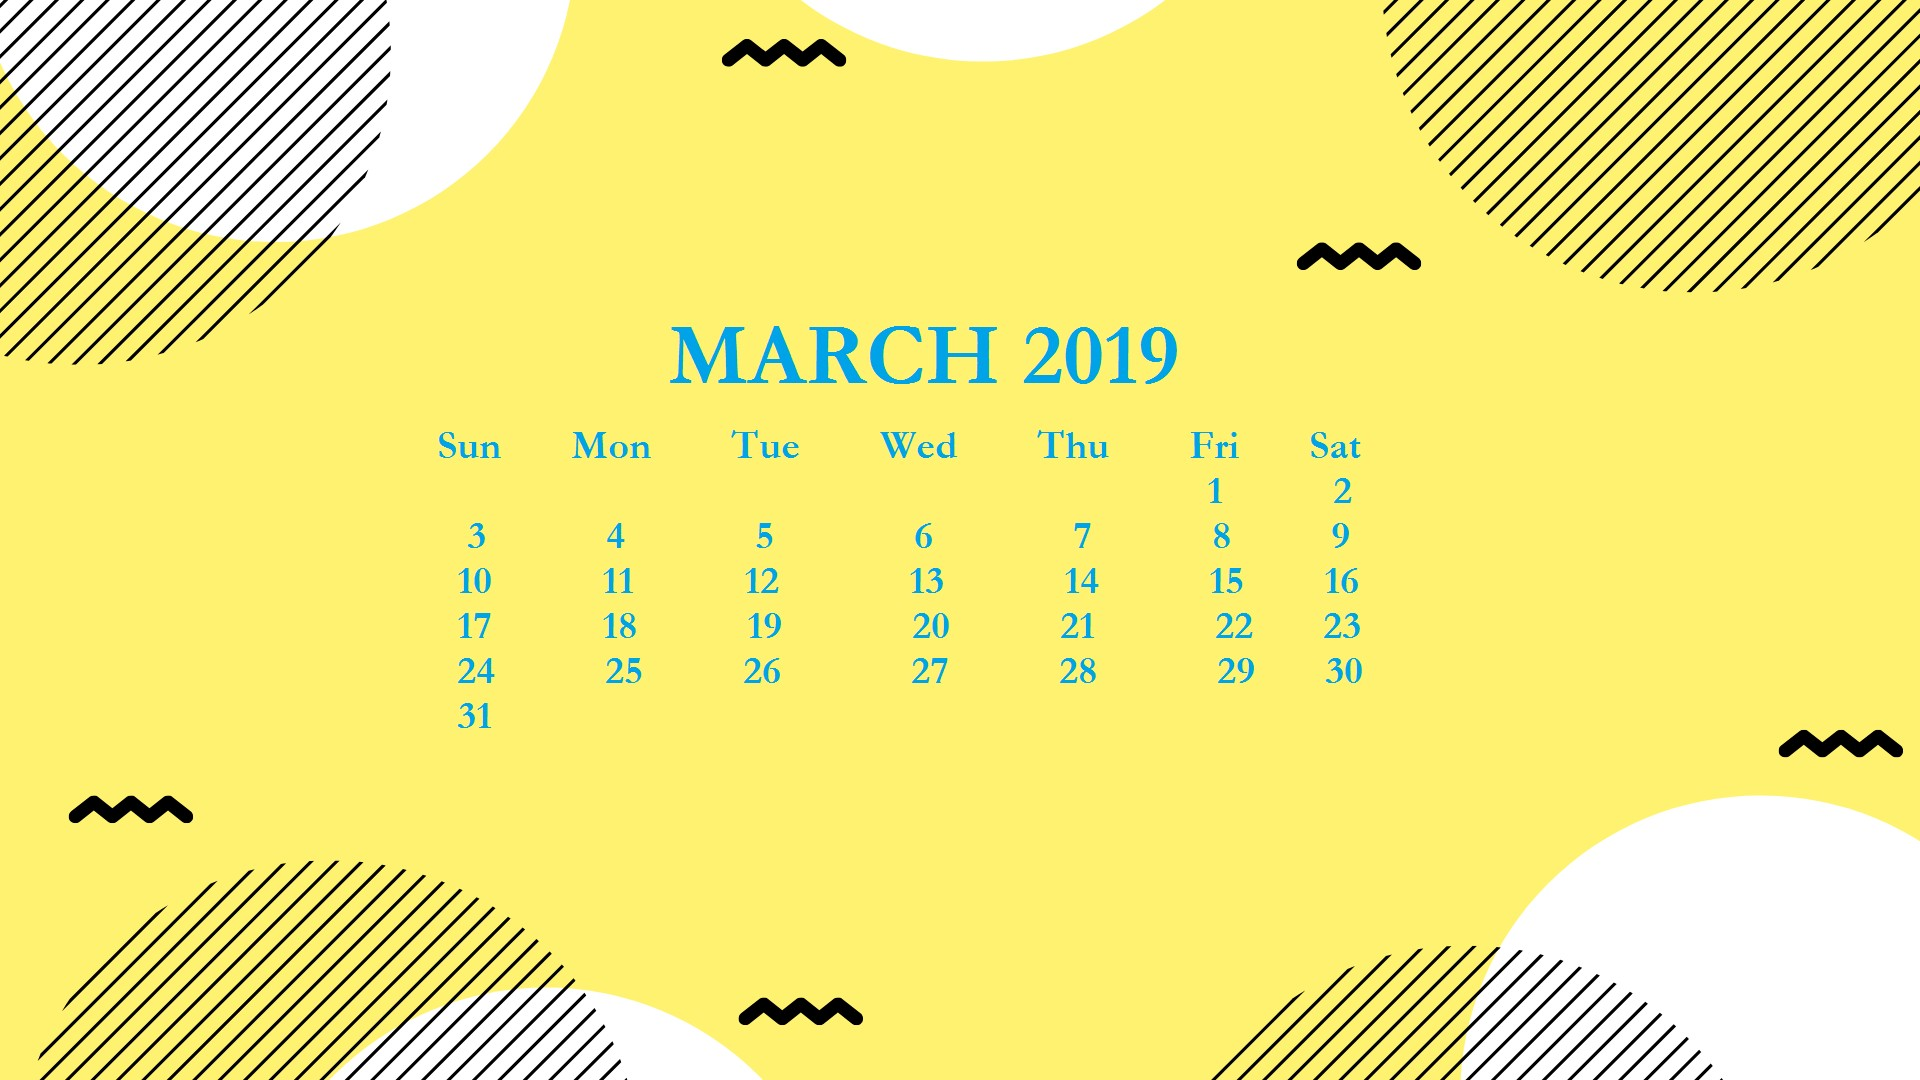 March Calendar for Kids Más Reciente March 2019 Calendar Wallpaper for Desktop March2019 2019calendar Of March Calendar for Kids Más Arriba-a-fecha Bottle Kids Live at Burnham Park Hall Burnham Park Hall London [1